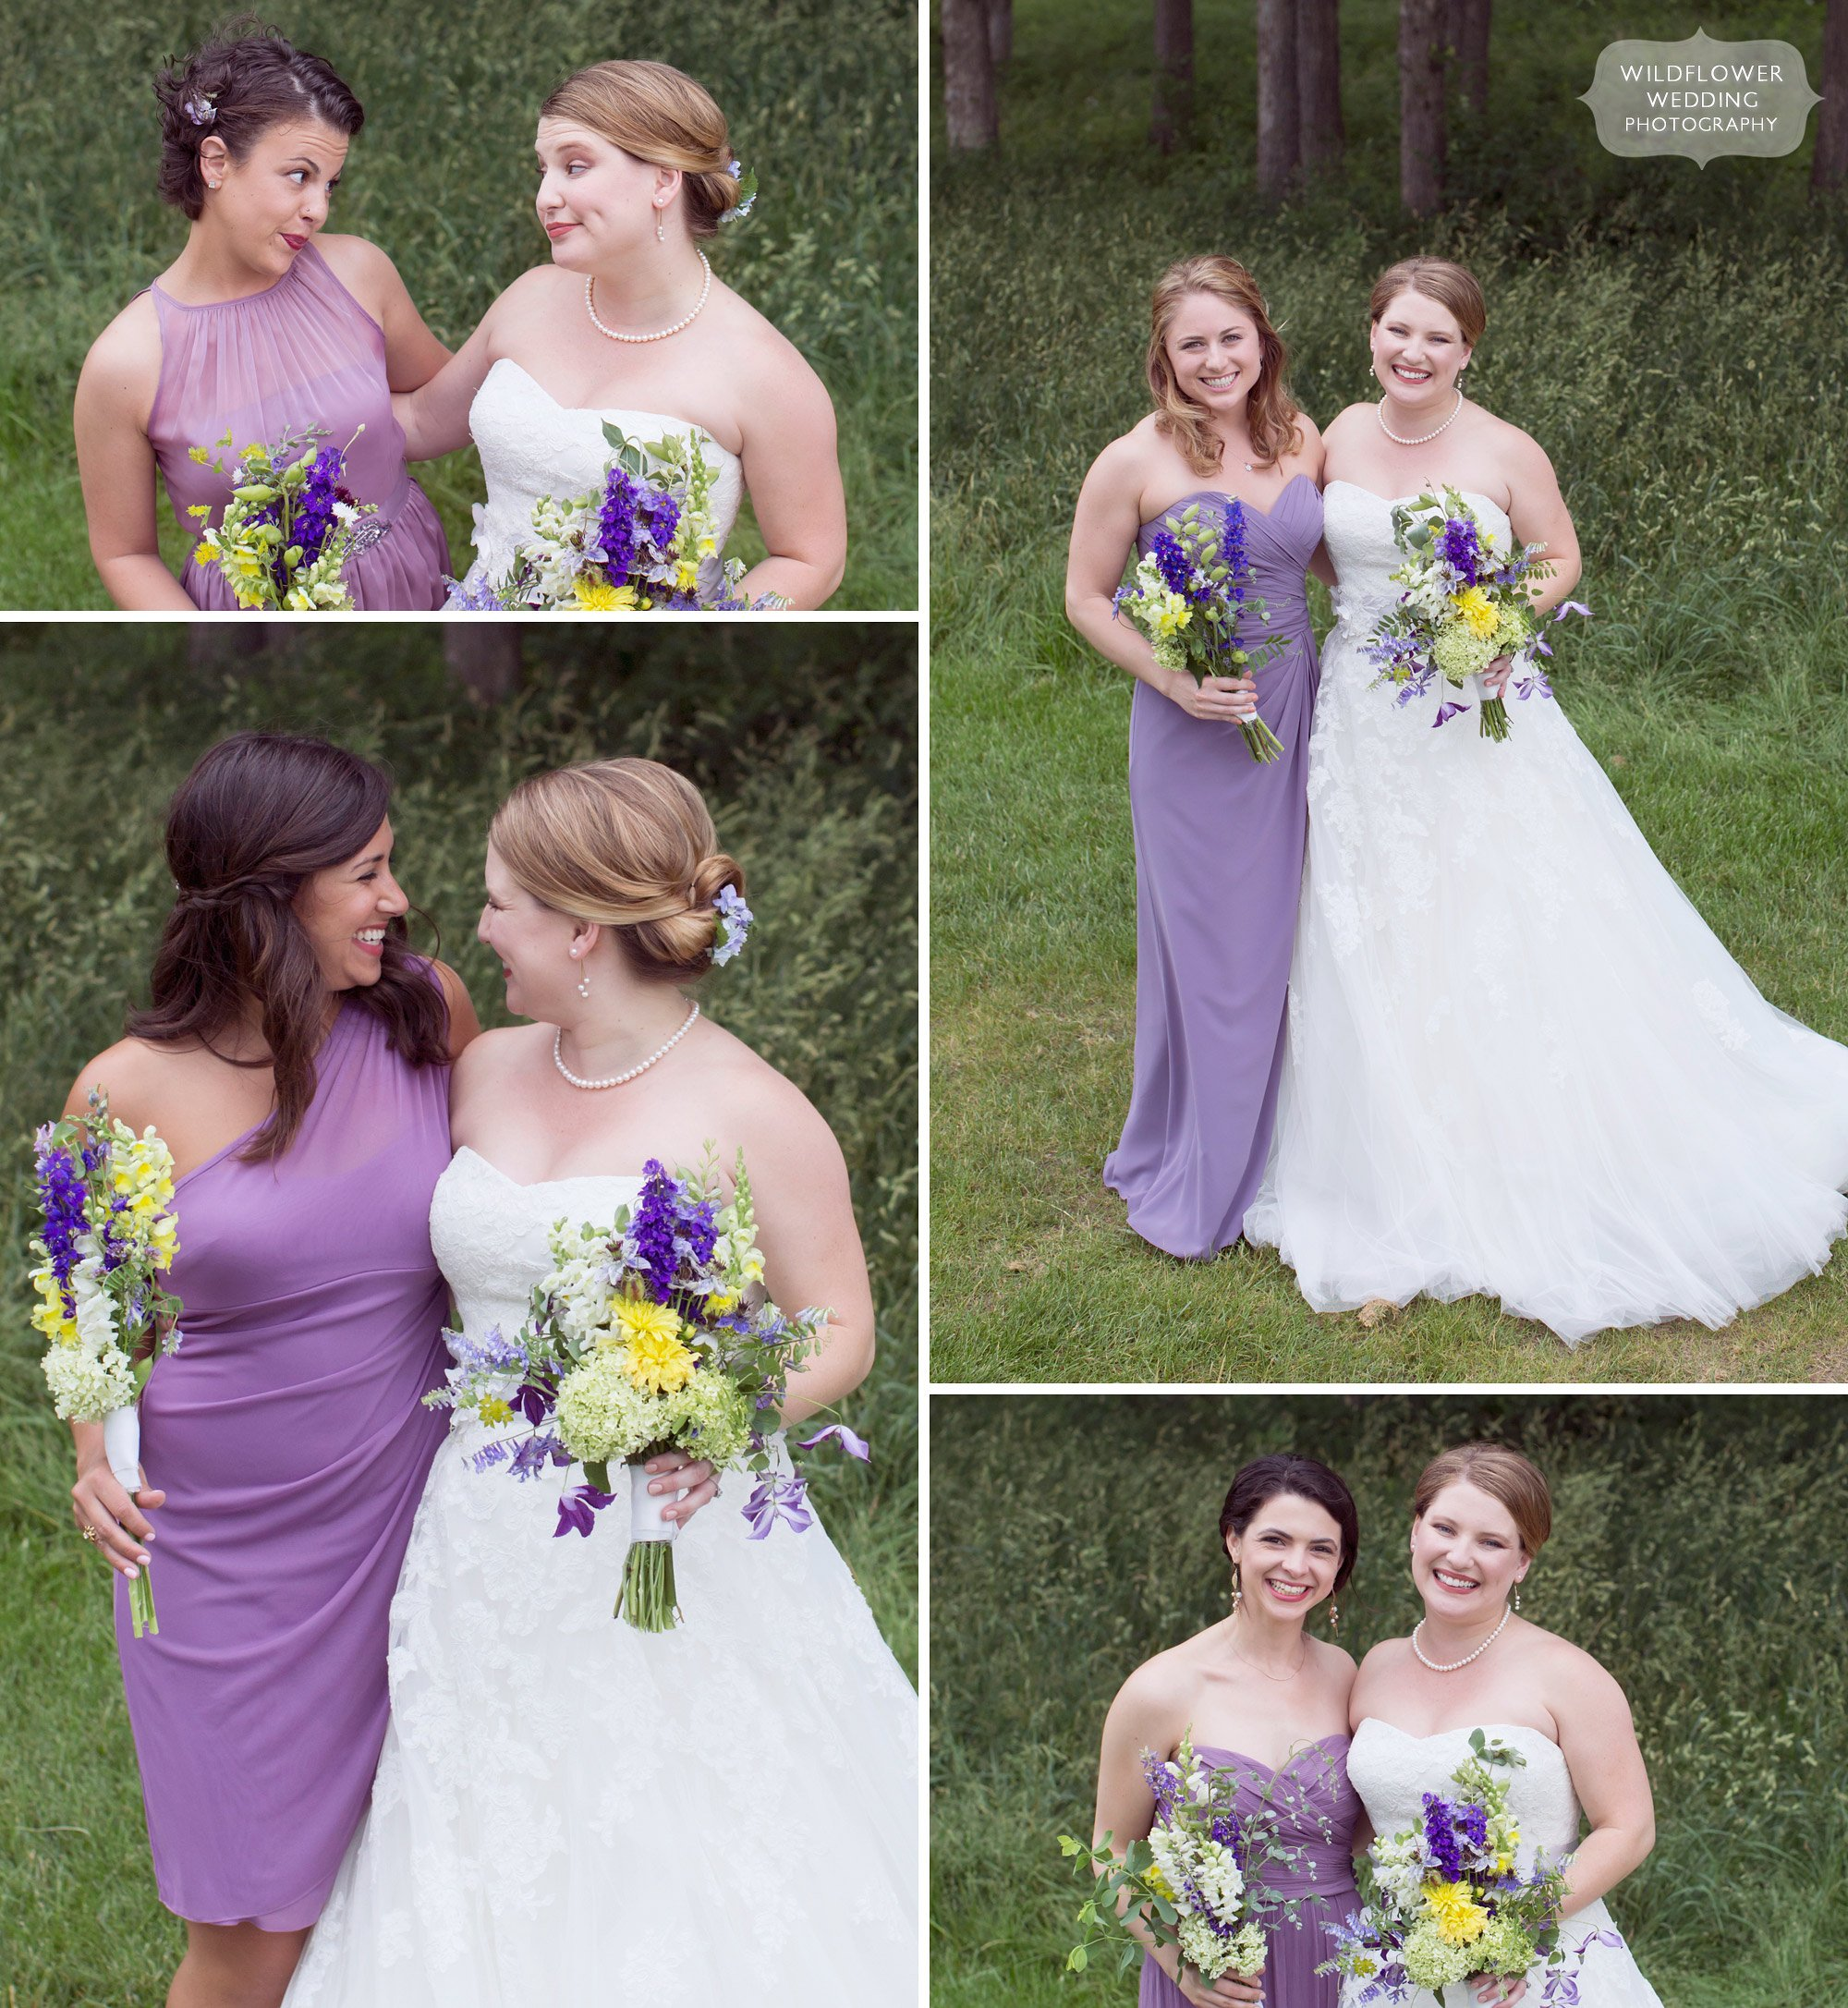 Variety of pose ideas for bride with bridesmaids in Columbia, MO.